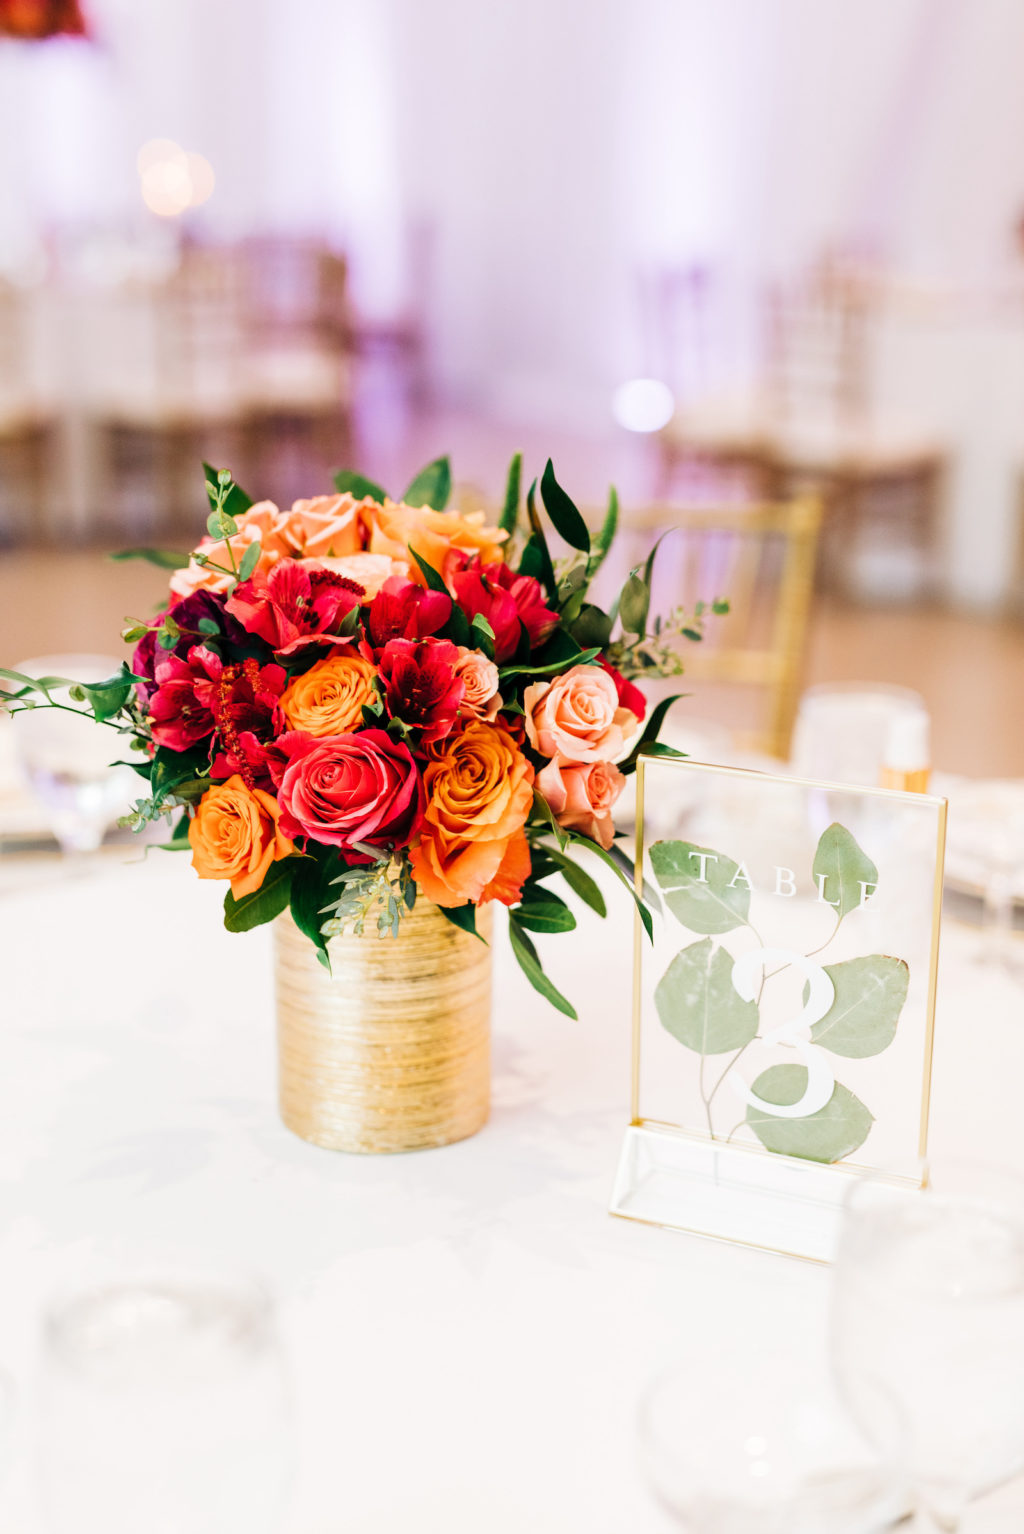 Elegant Wedding Reception Decor, Vibrant and Small Colorful Red and Orange Roses Floral Centerpiece in Gold Vase   Tampa Bay Wedding Florist Monarch Events and Design   Wedding Rentals Kate Ryan Event Rentals